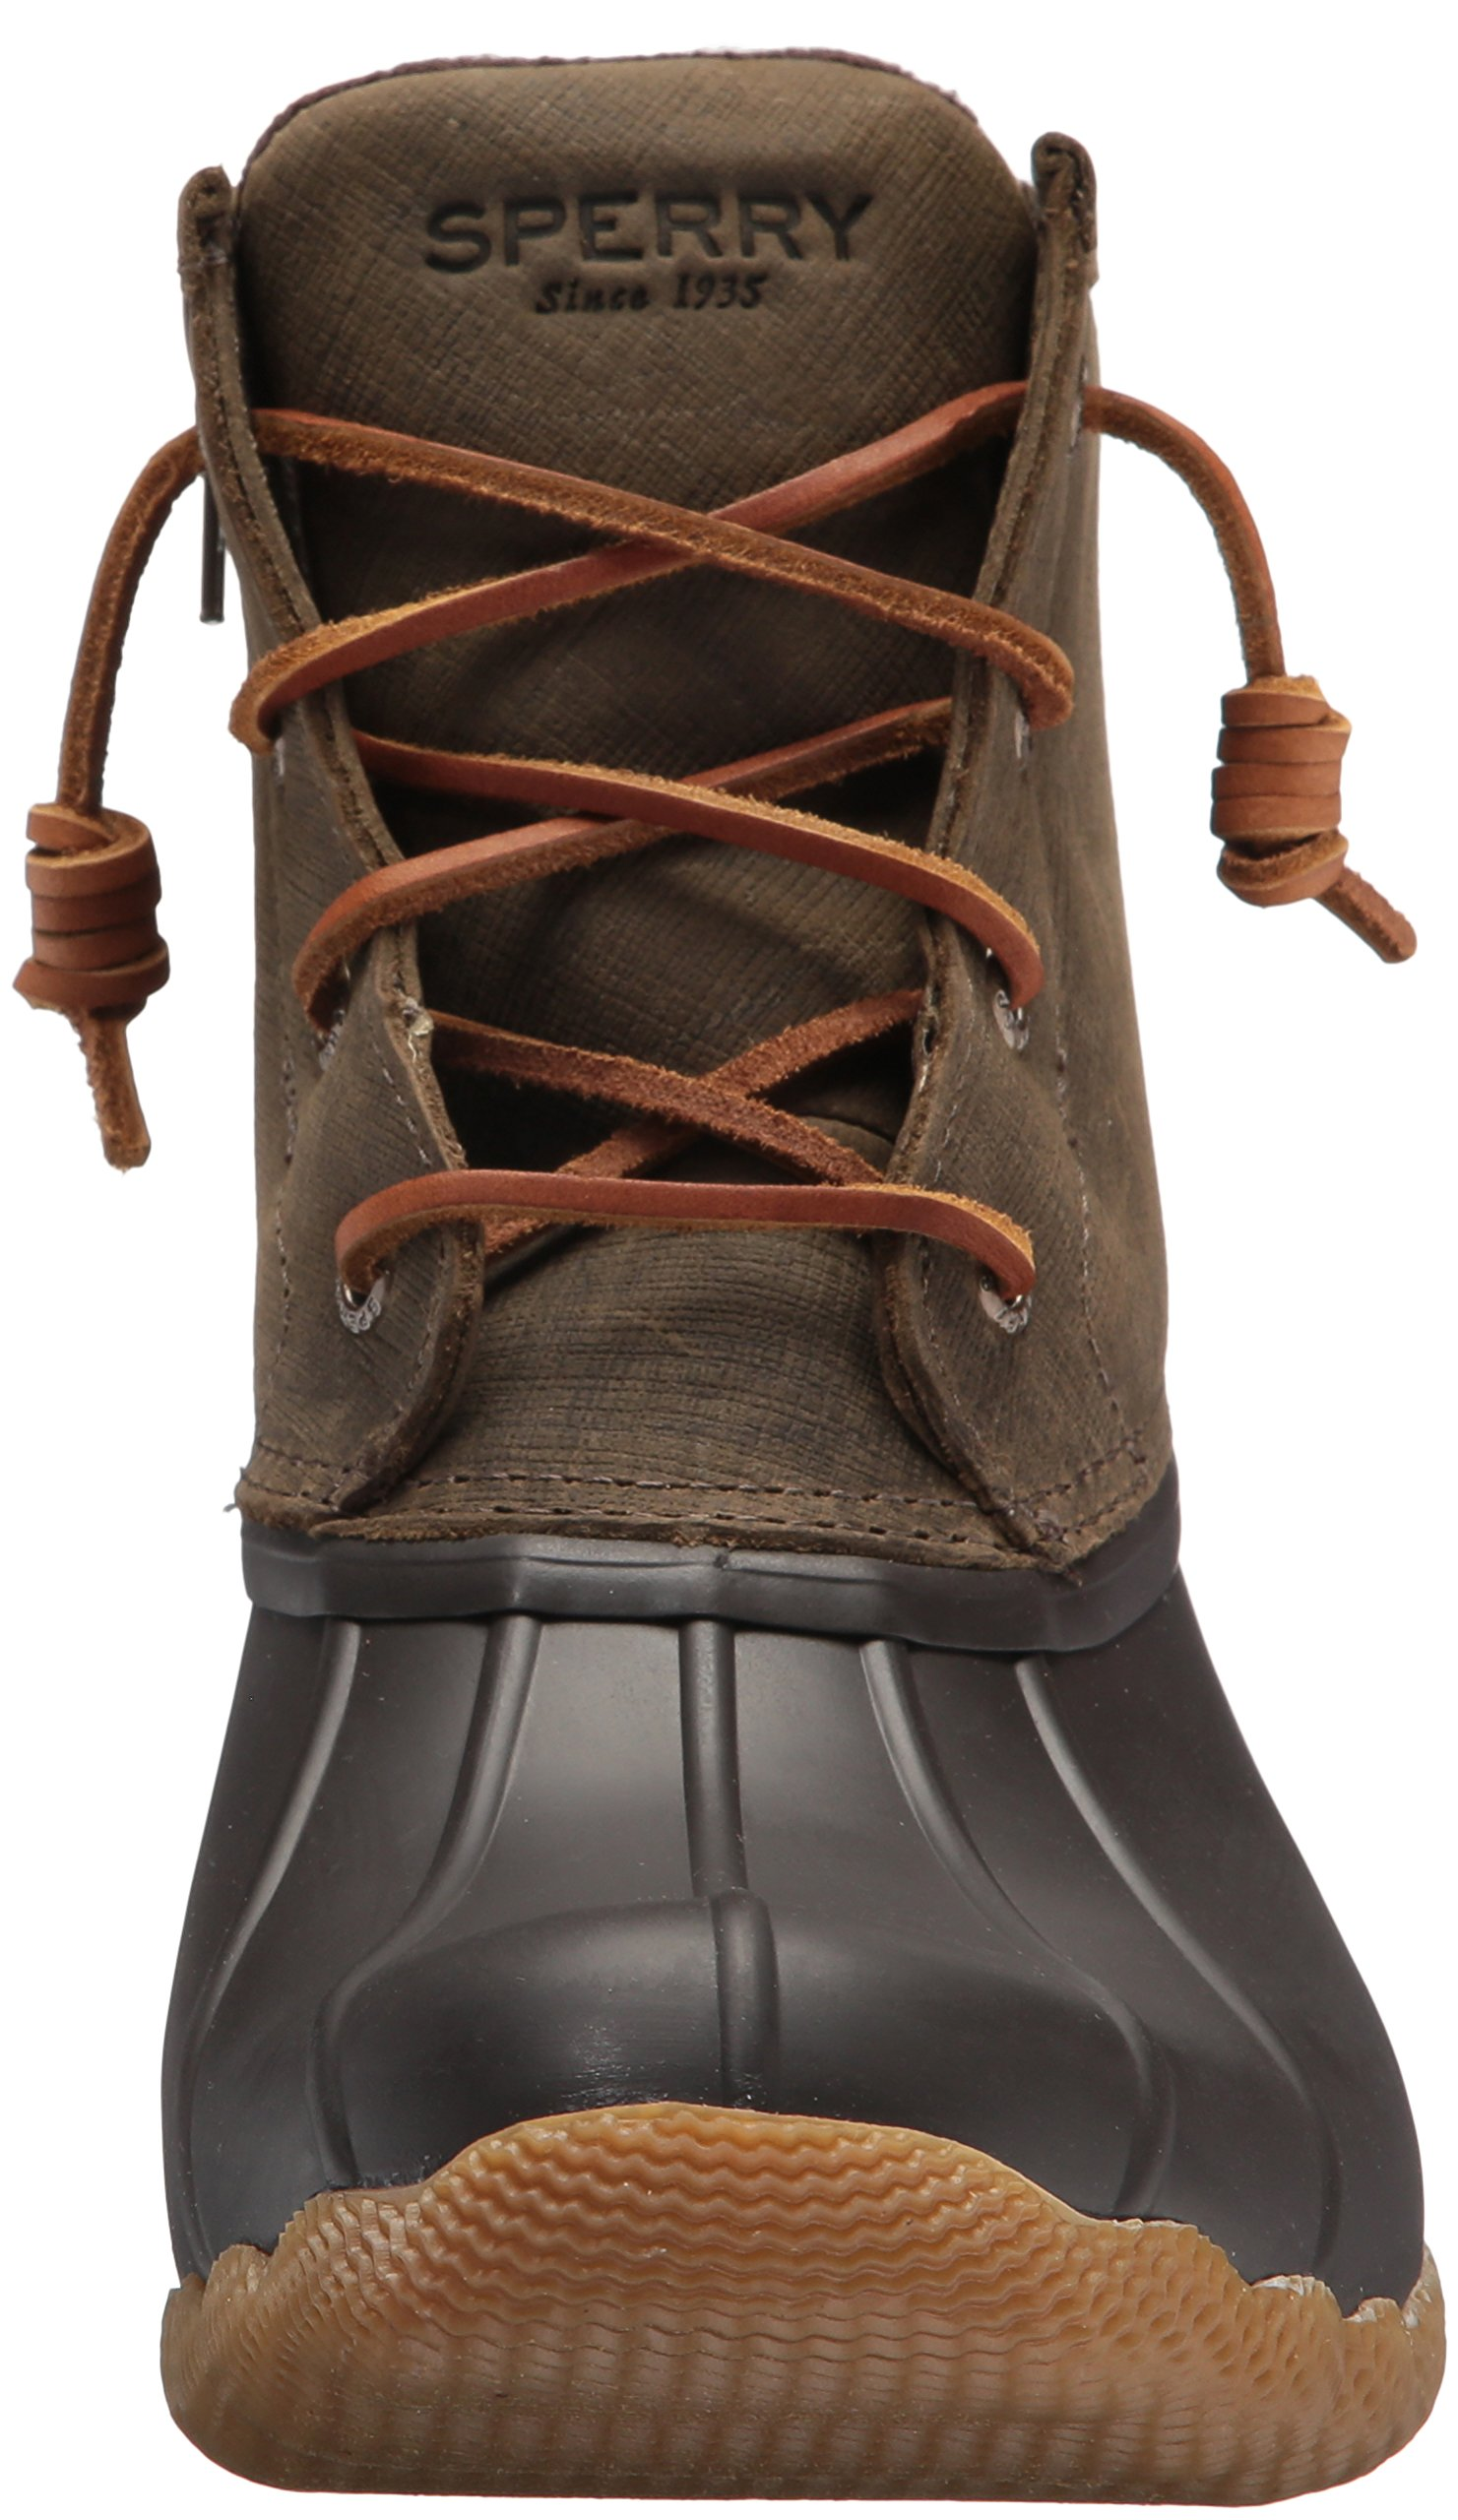 Sperry Top-Sider Women's Saltwater Rain Boot, Brown/Olive, 11 Medium US by Sperry Top-Sider (Image #4)